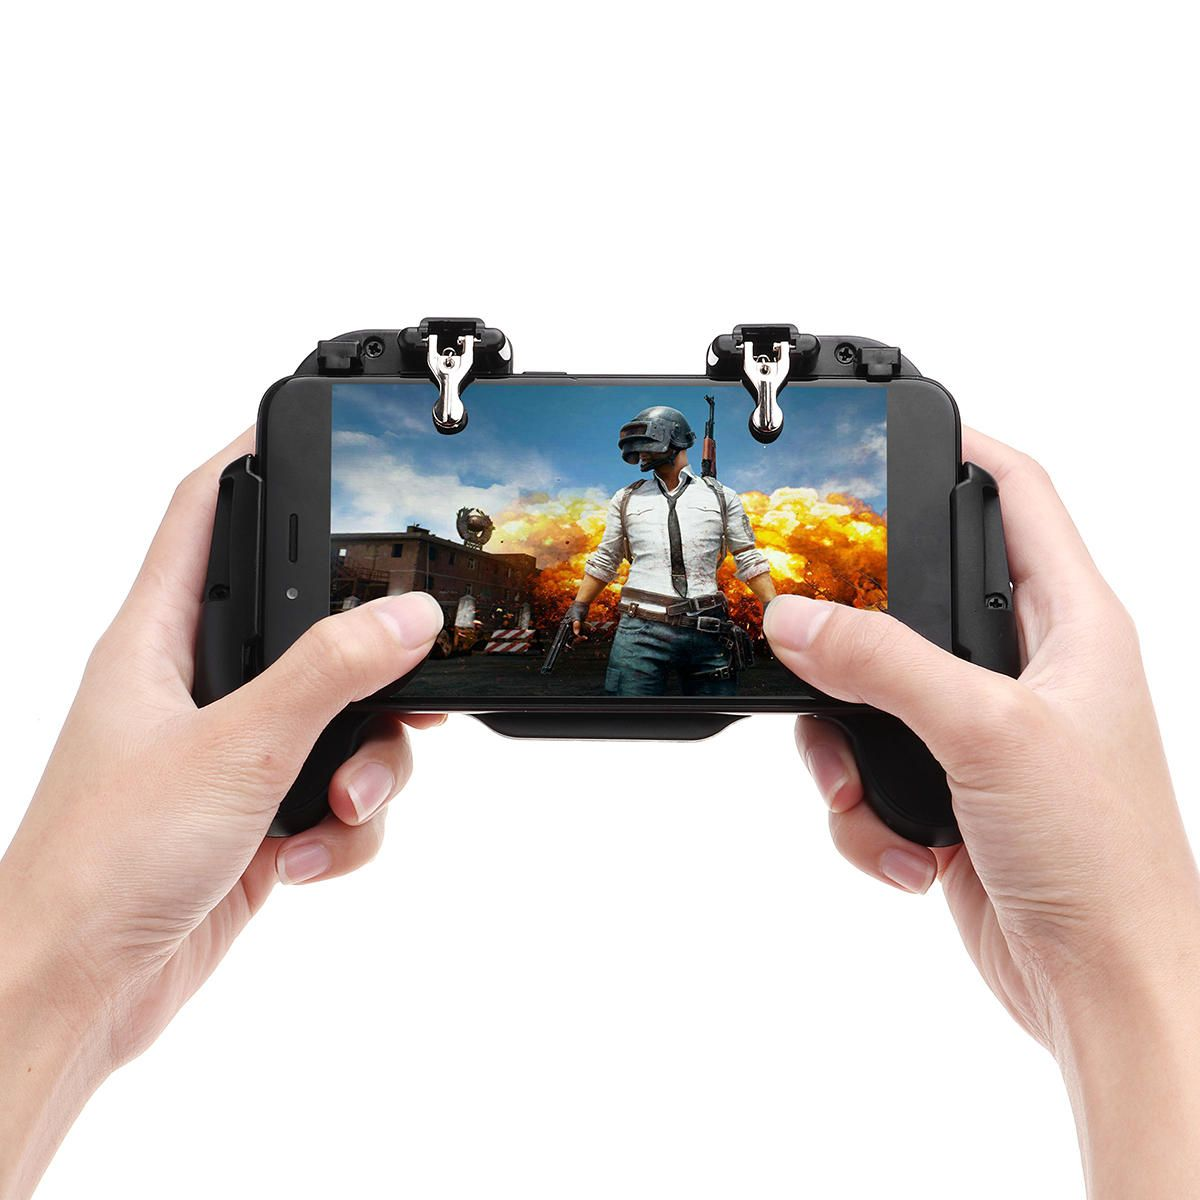 RLJ US$9.34 H5 Gamepad Joystick Game Controller USB Built-in Cooling Fan for PUBG Rules of Survival Mobile Game Fire Trigger for Phone